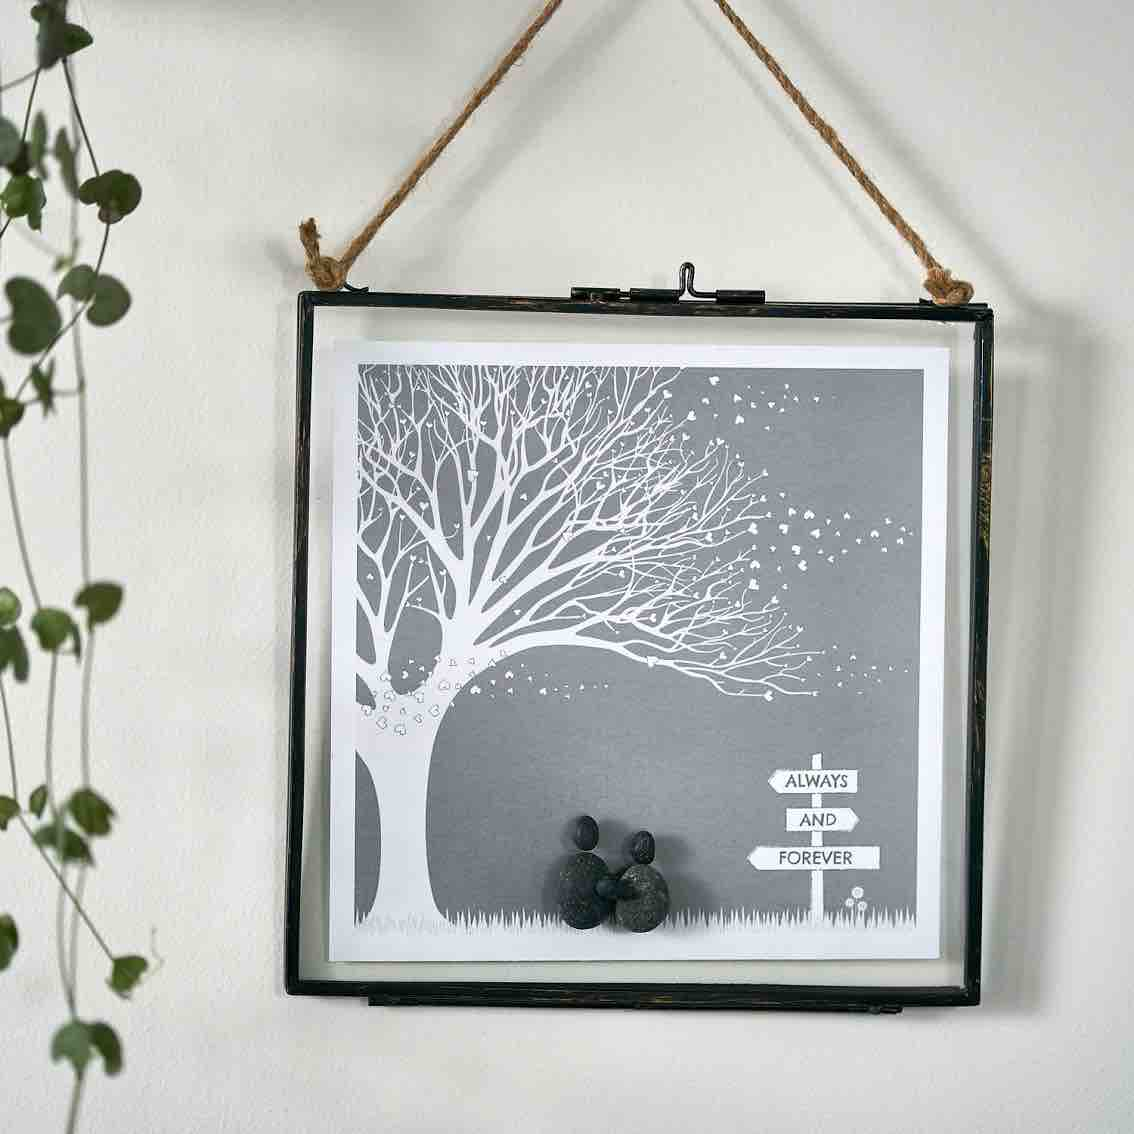 always-and-forever-hanging-glass-frame